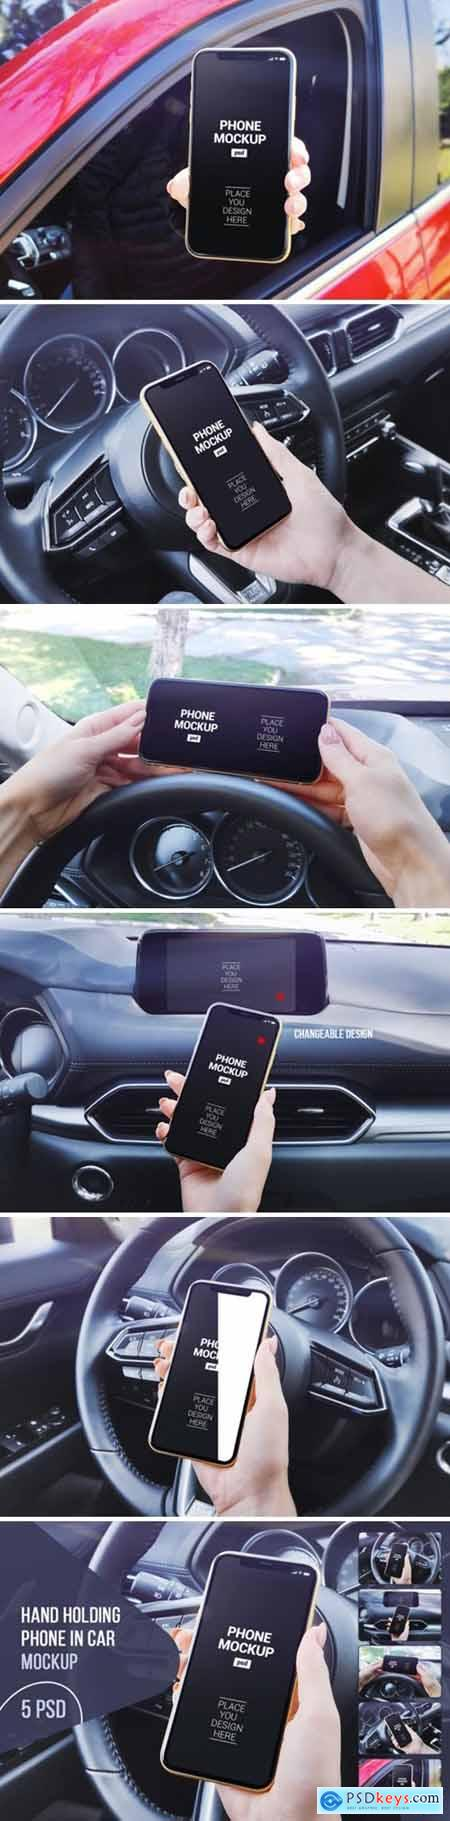 Hand Holding Phone in Car Mockup